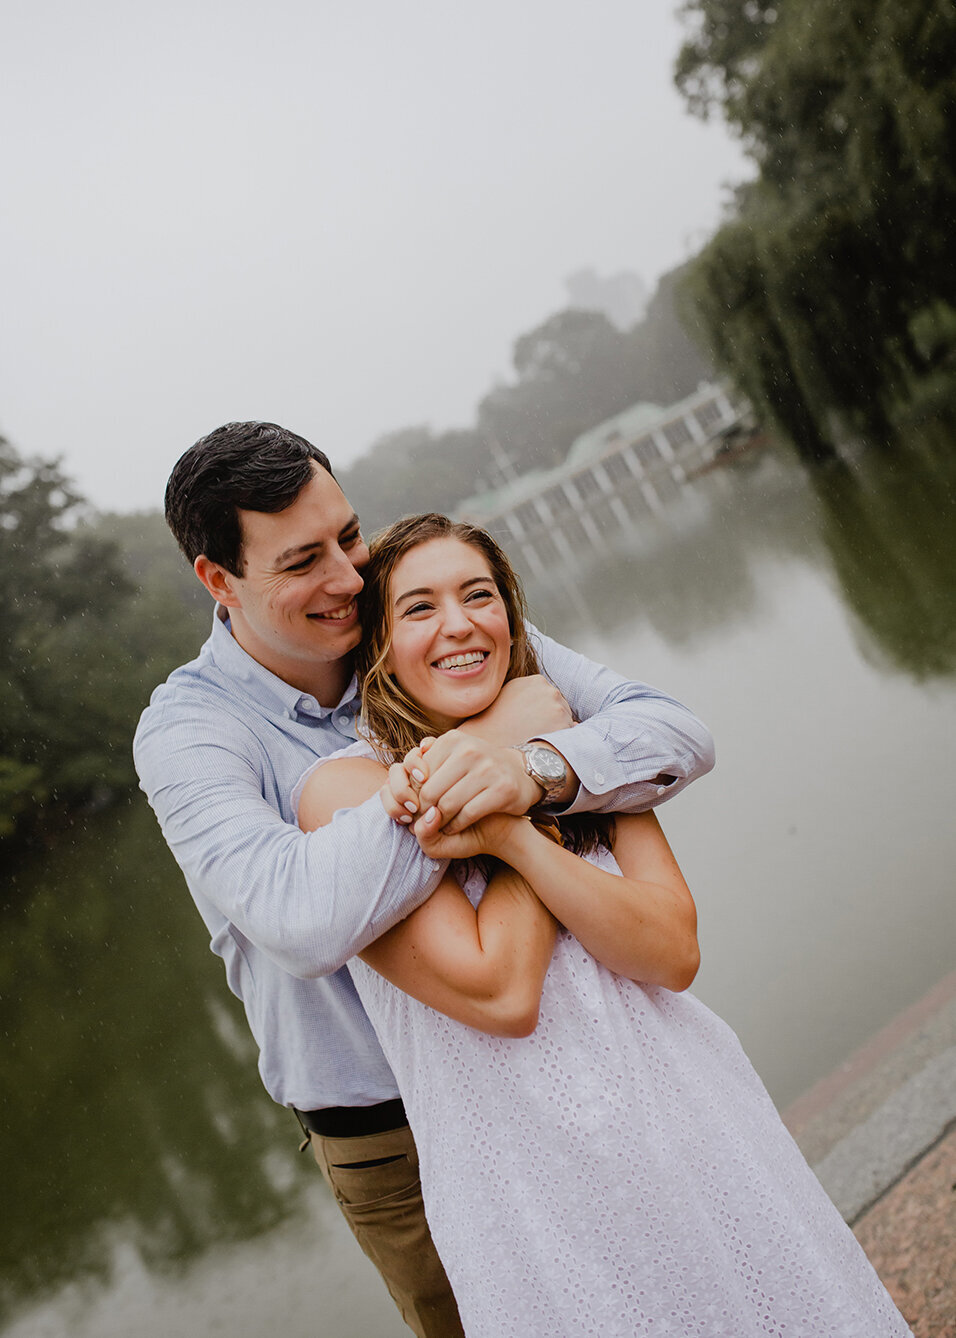 A newly engaged couple celebrates in front of the Boathouse in Central Park, New York. The man wraps his arms around his bride-to-be.